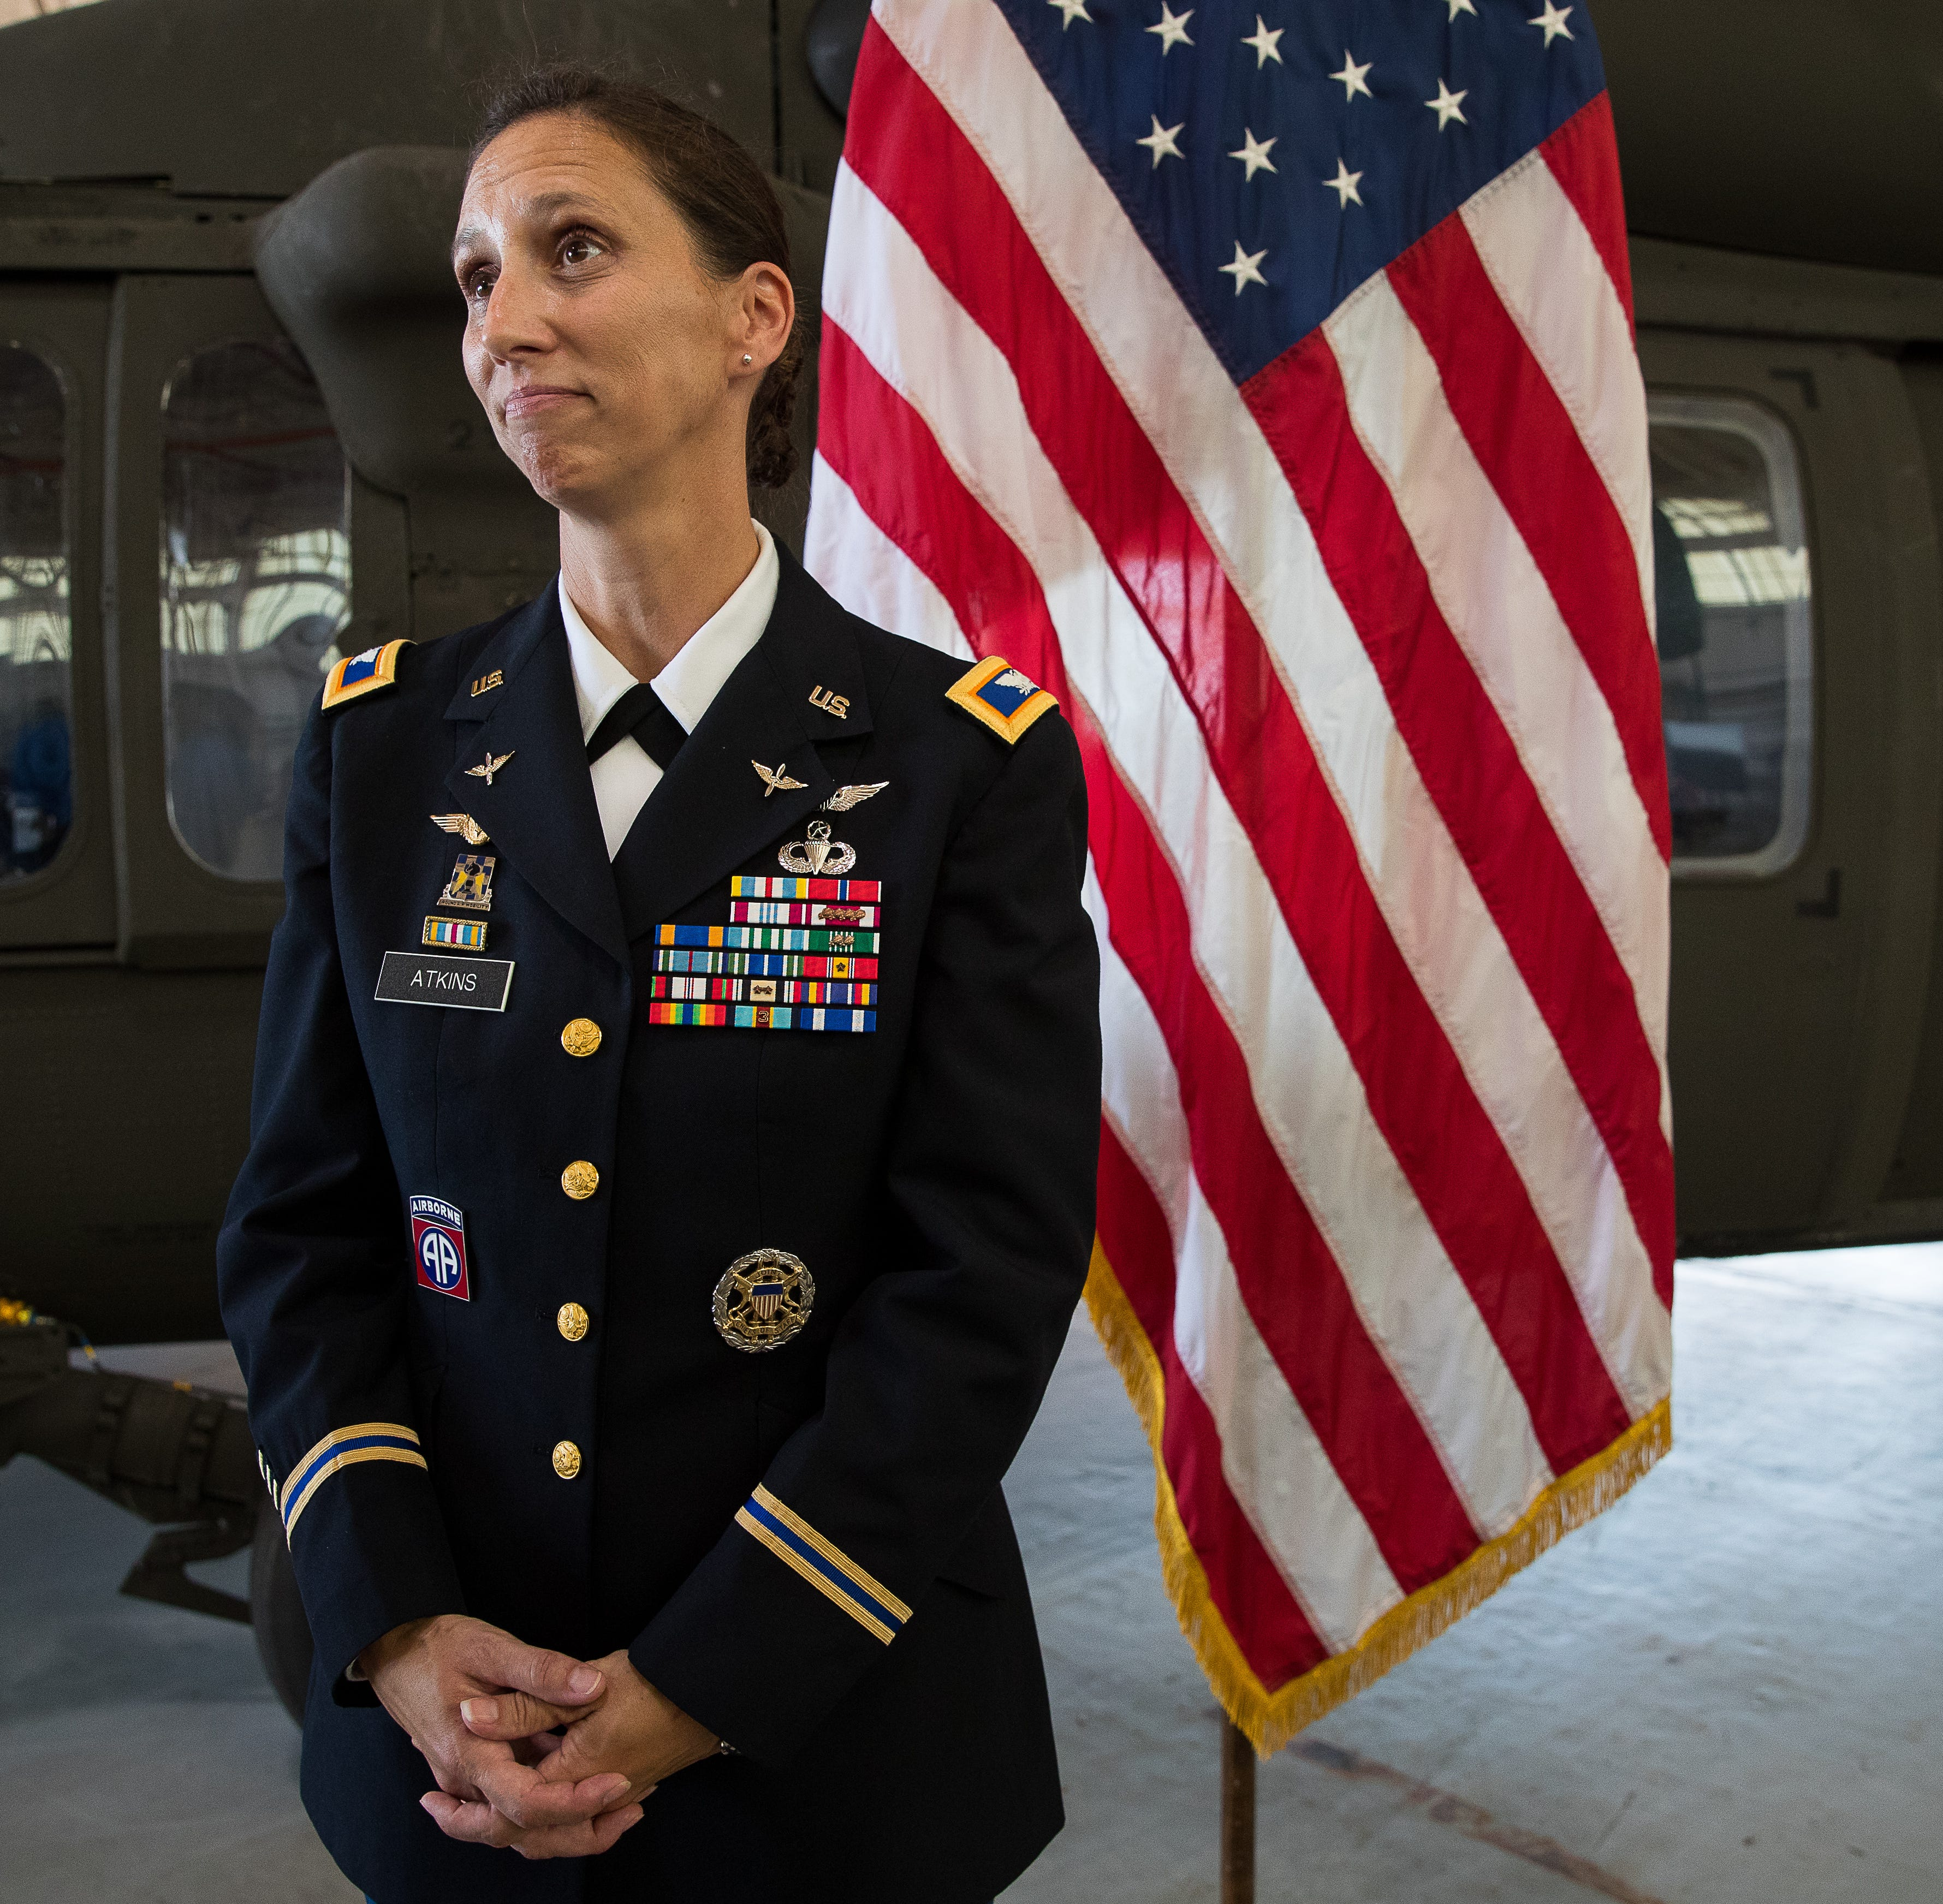 Col.Gail Atkins becomes first woman to lead Corpus Christi Army Depot